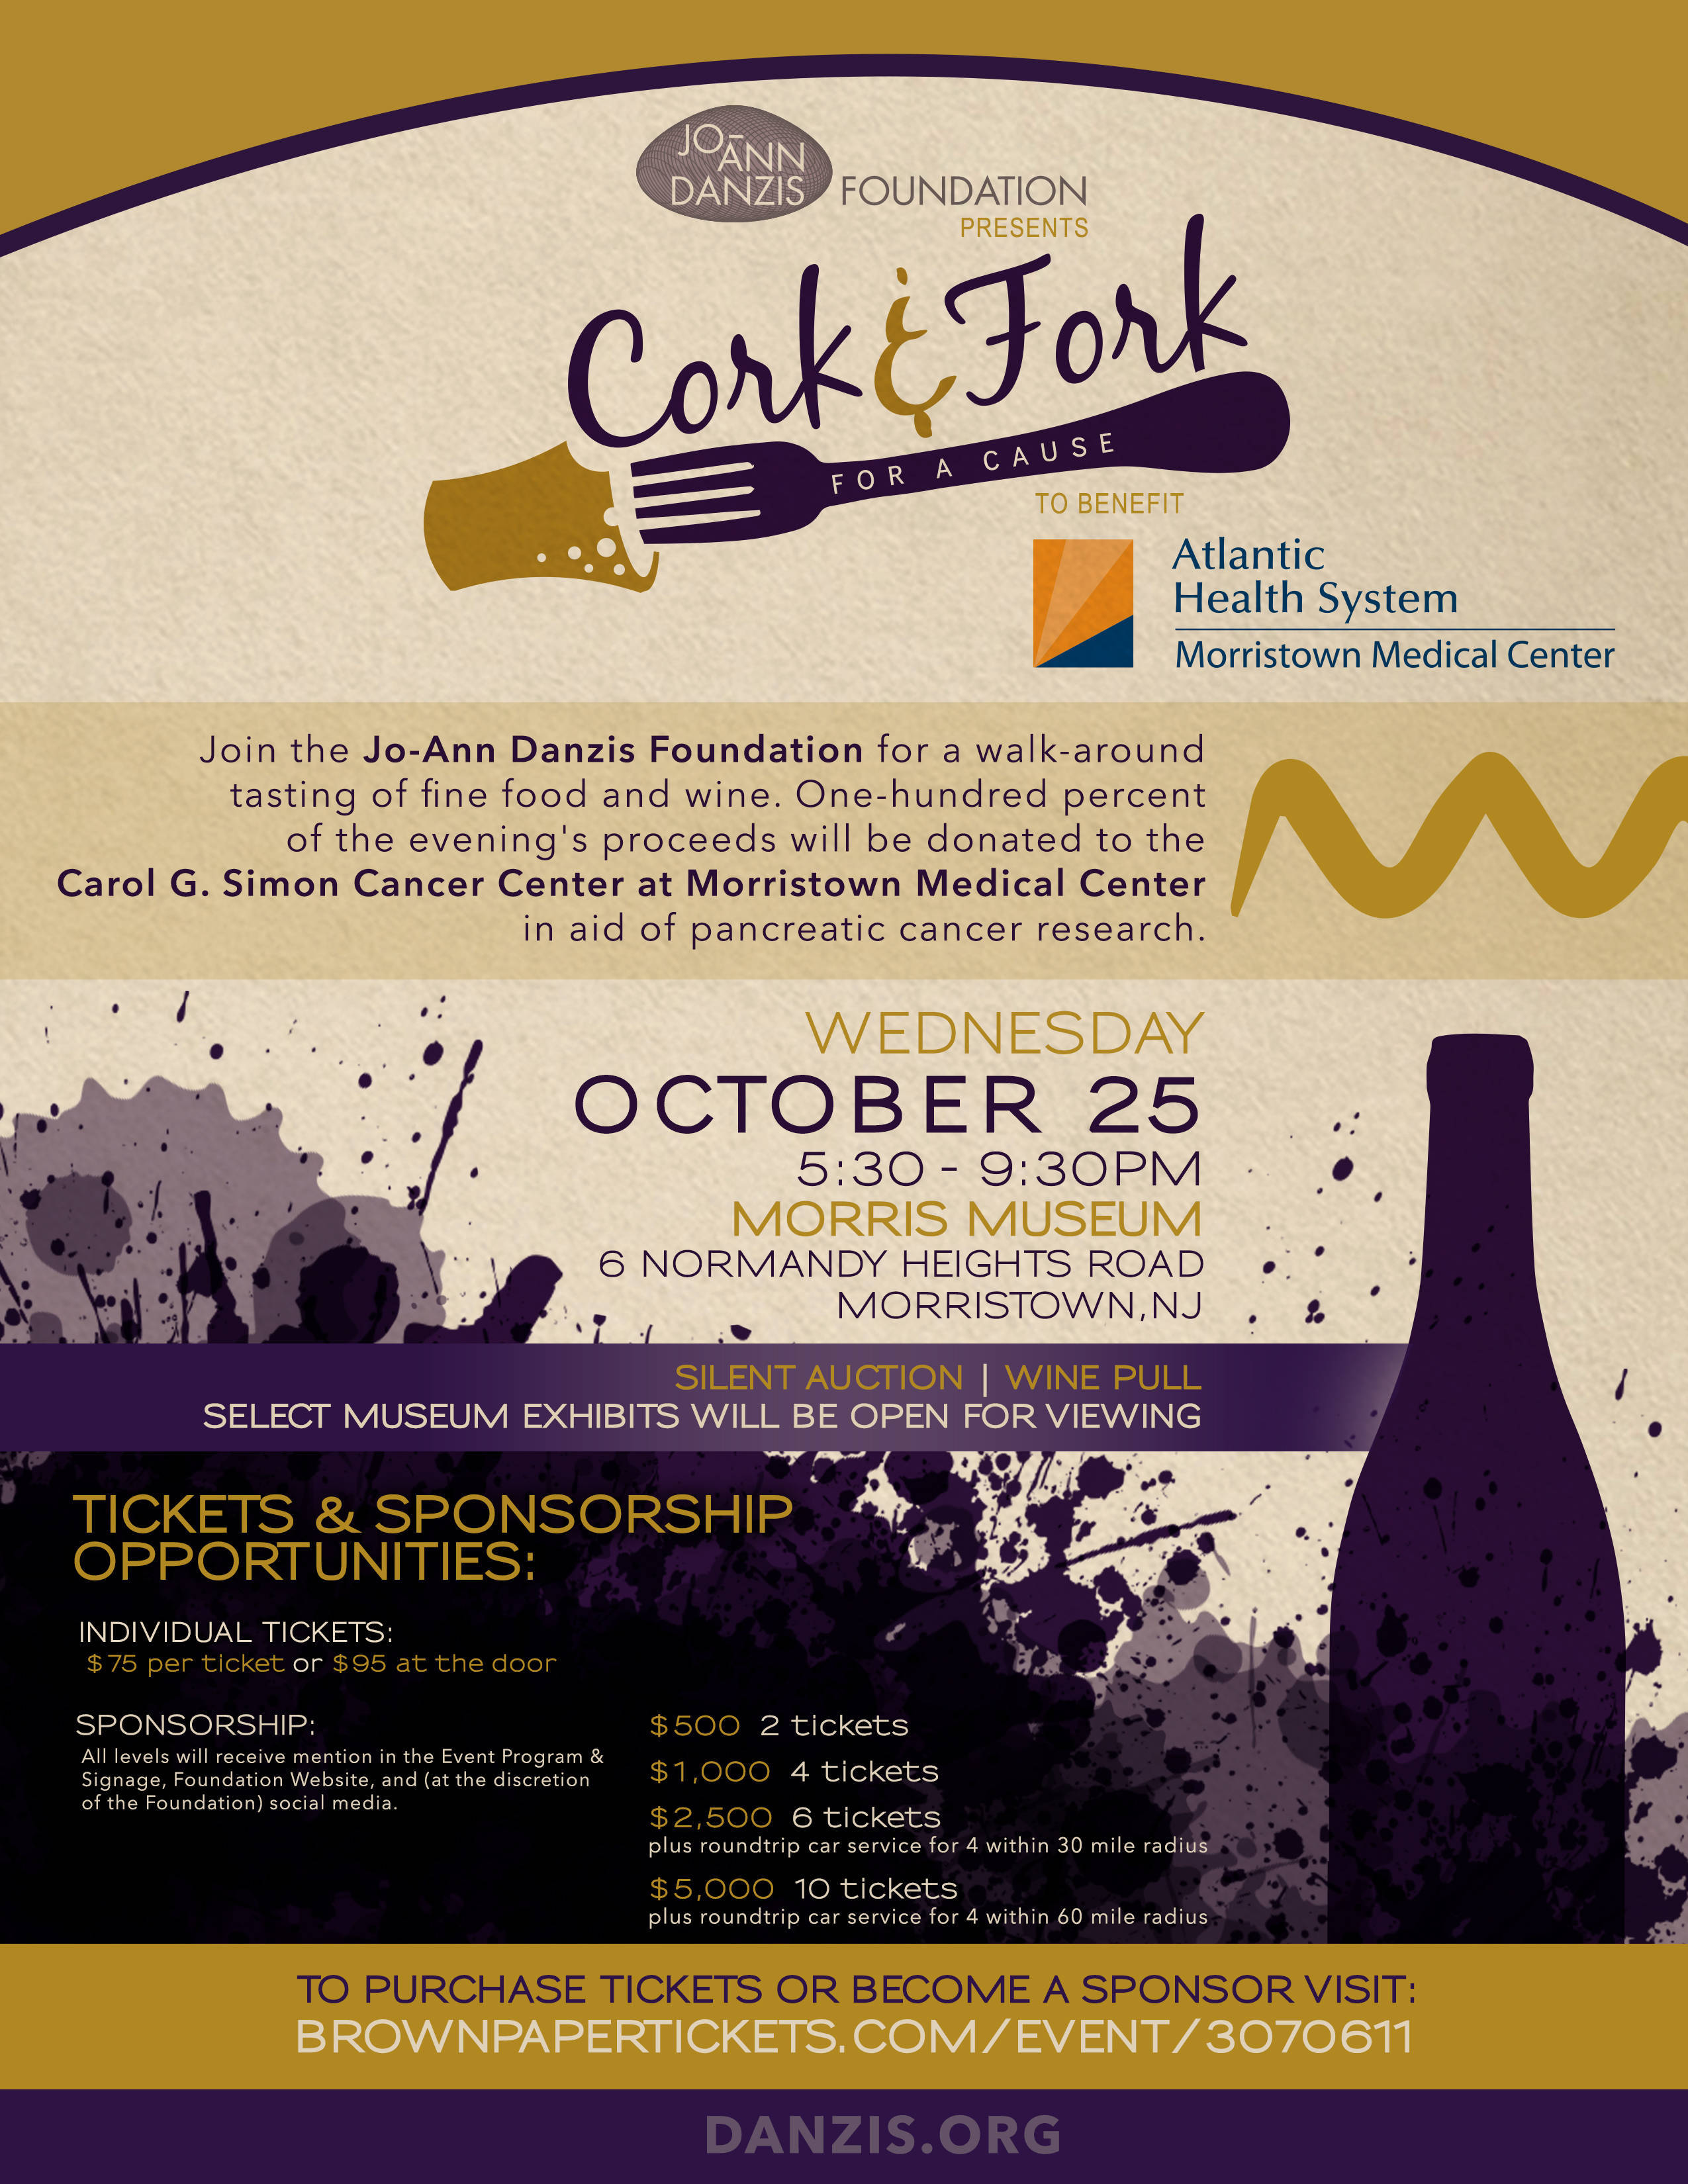 938f81712e9eabd06296_CorkFork_event_8x11_FLYER_8-22-17.jpg